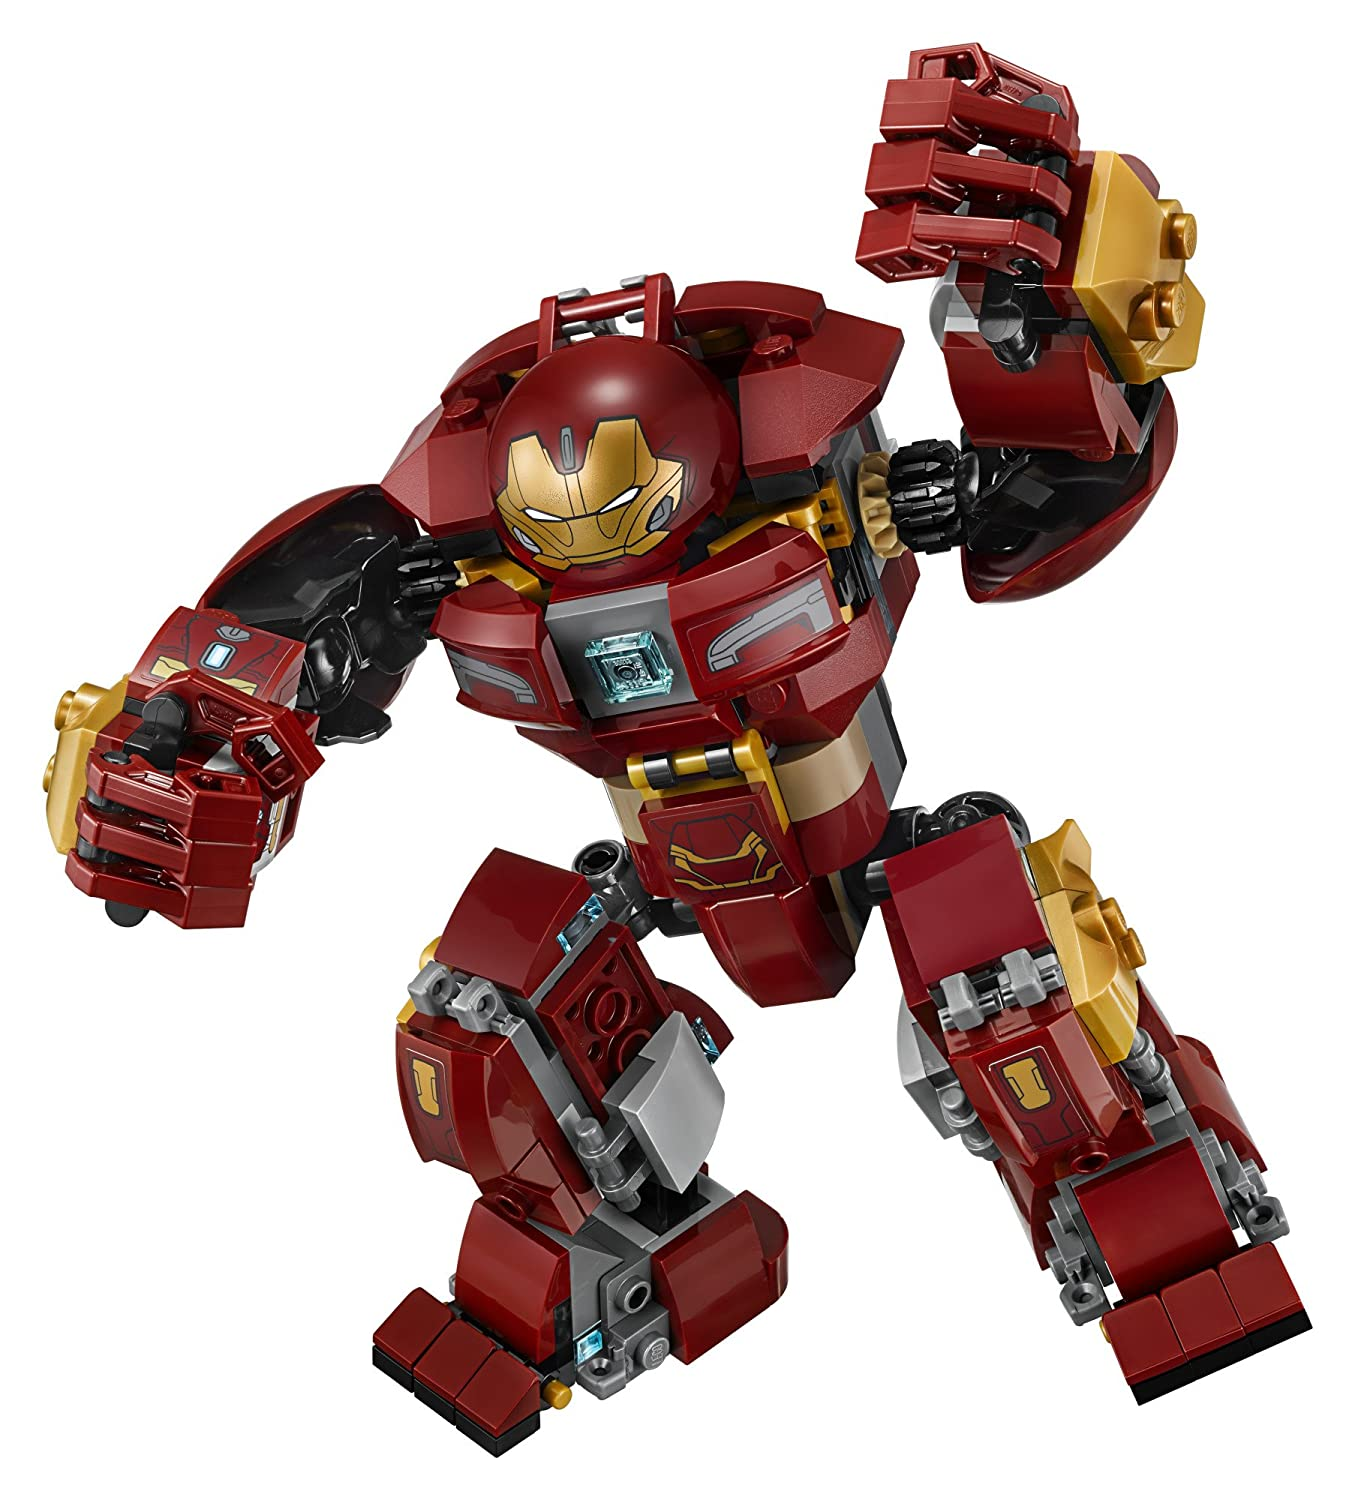 Avengers Infinity War Hulkbuster, Avengers, Infinity War, Marvel Universe, MCU, Iron Man, Thor, Thanos, cosplay gear, action figures, Marvel items, Hulk, Spider Man, Captain America, Black Widow, Doctor Strange,